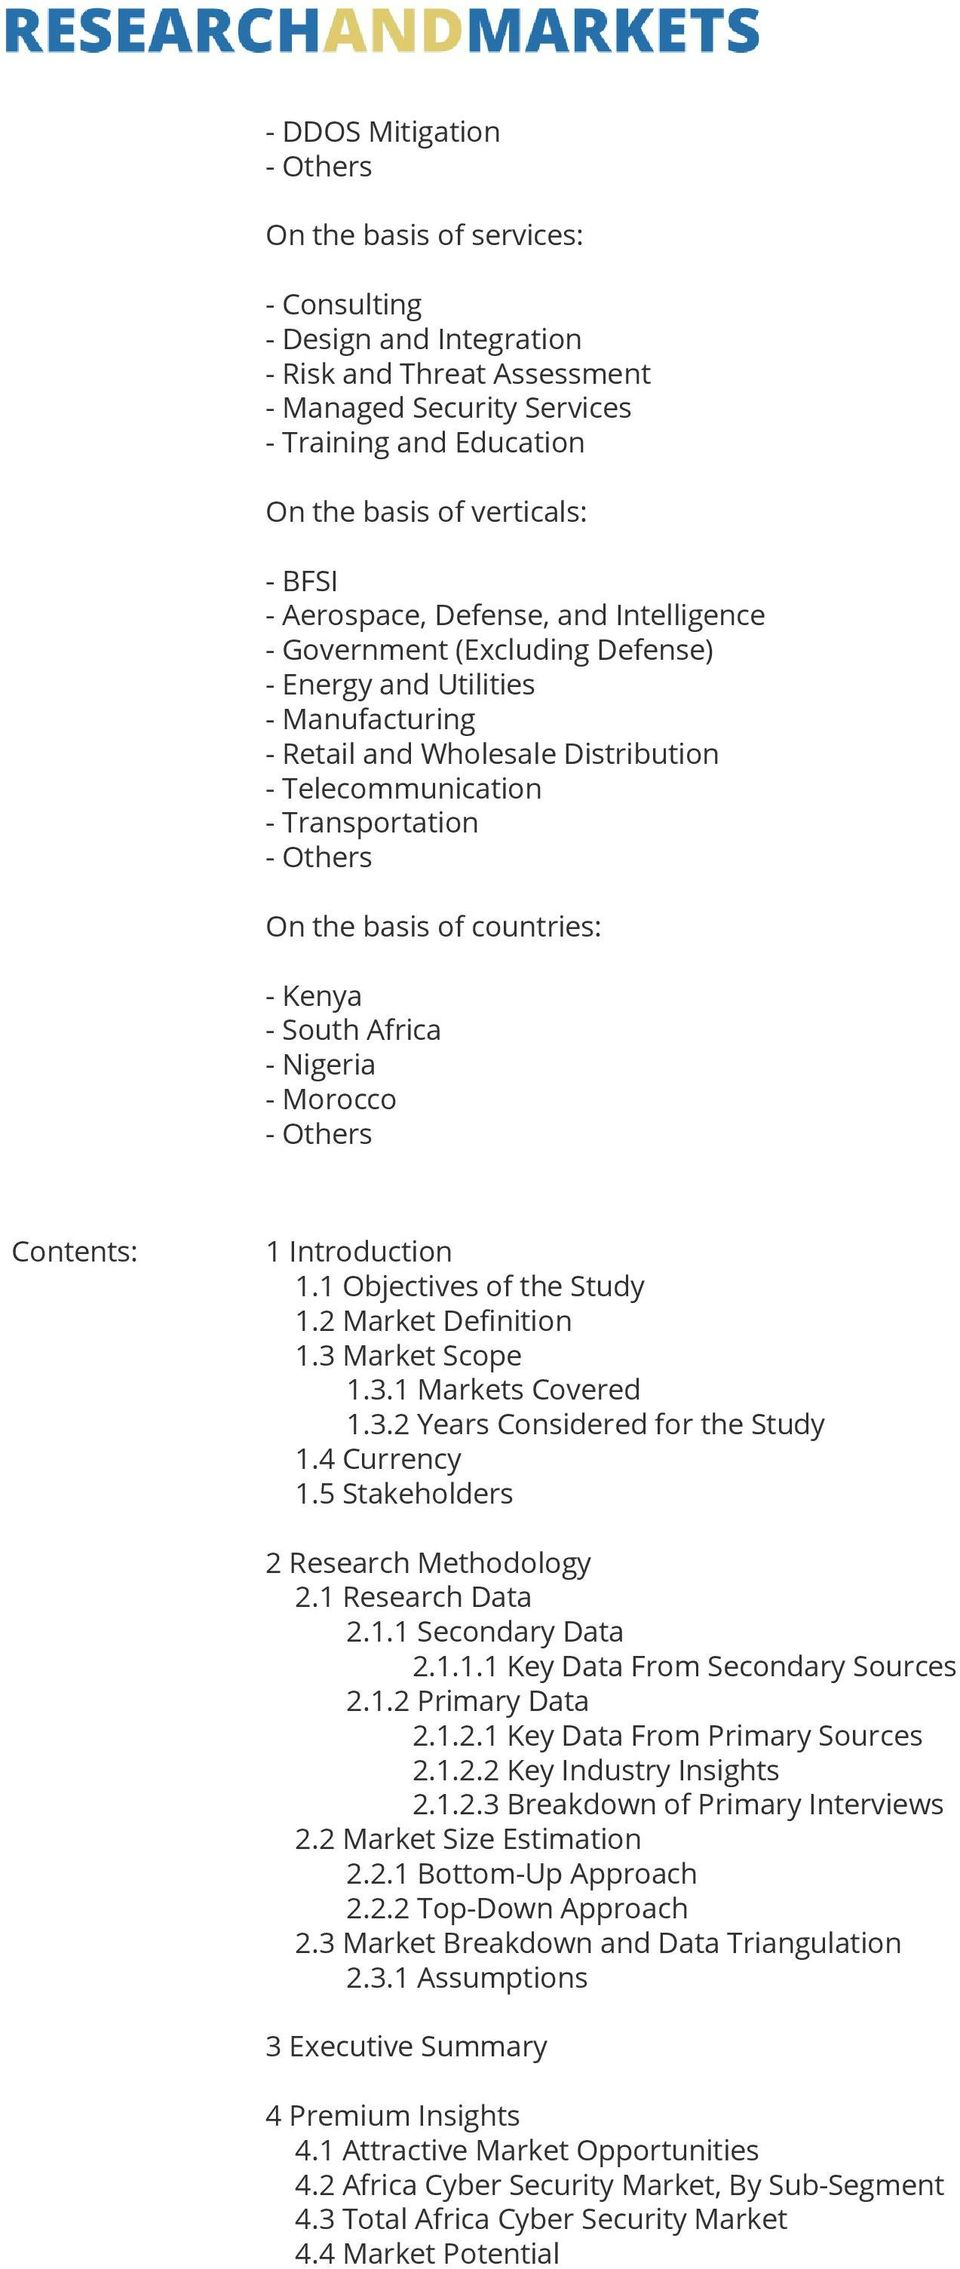 On the basis of countries: - Kenya - South Africa - Nigeria - Morocco - Others Contents: 1 Introduction 1.1 Objectives of the Study 1.2 Market Definition 1.3 Market Scope 1.3.1 Markets Covered 1.3.2 Years Considered for the Study 1.